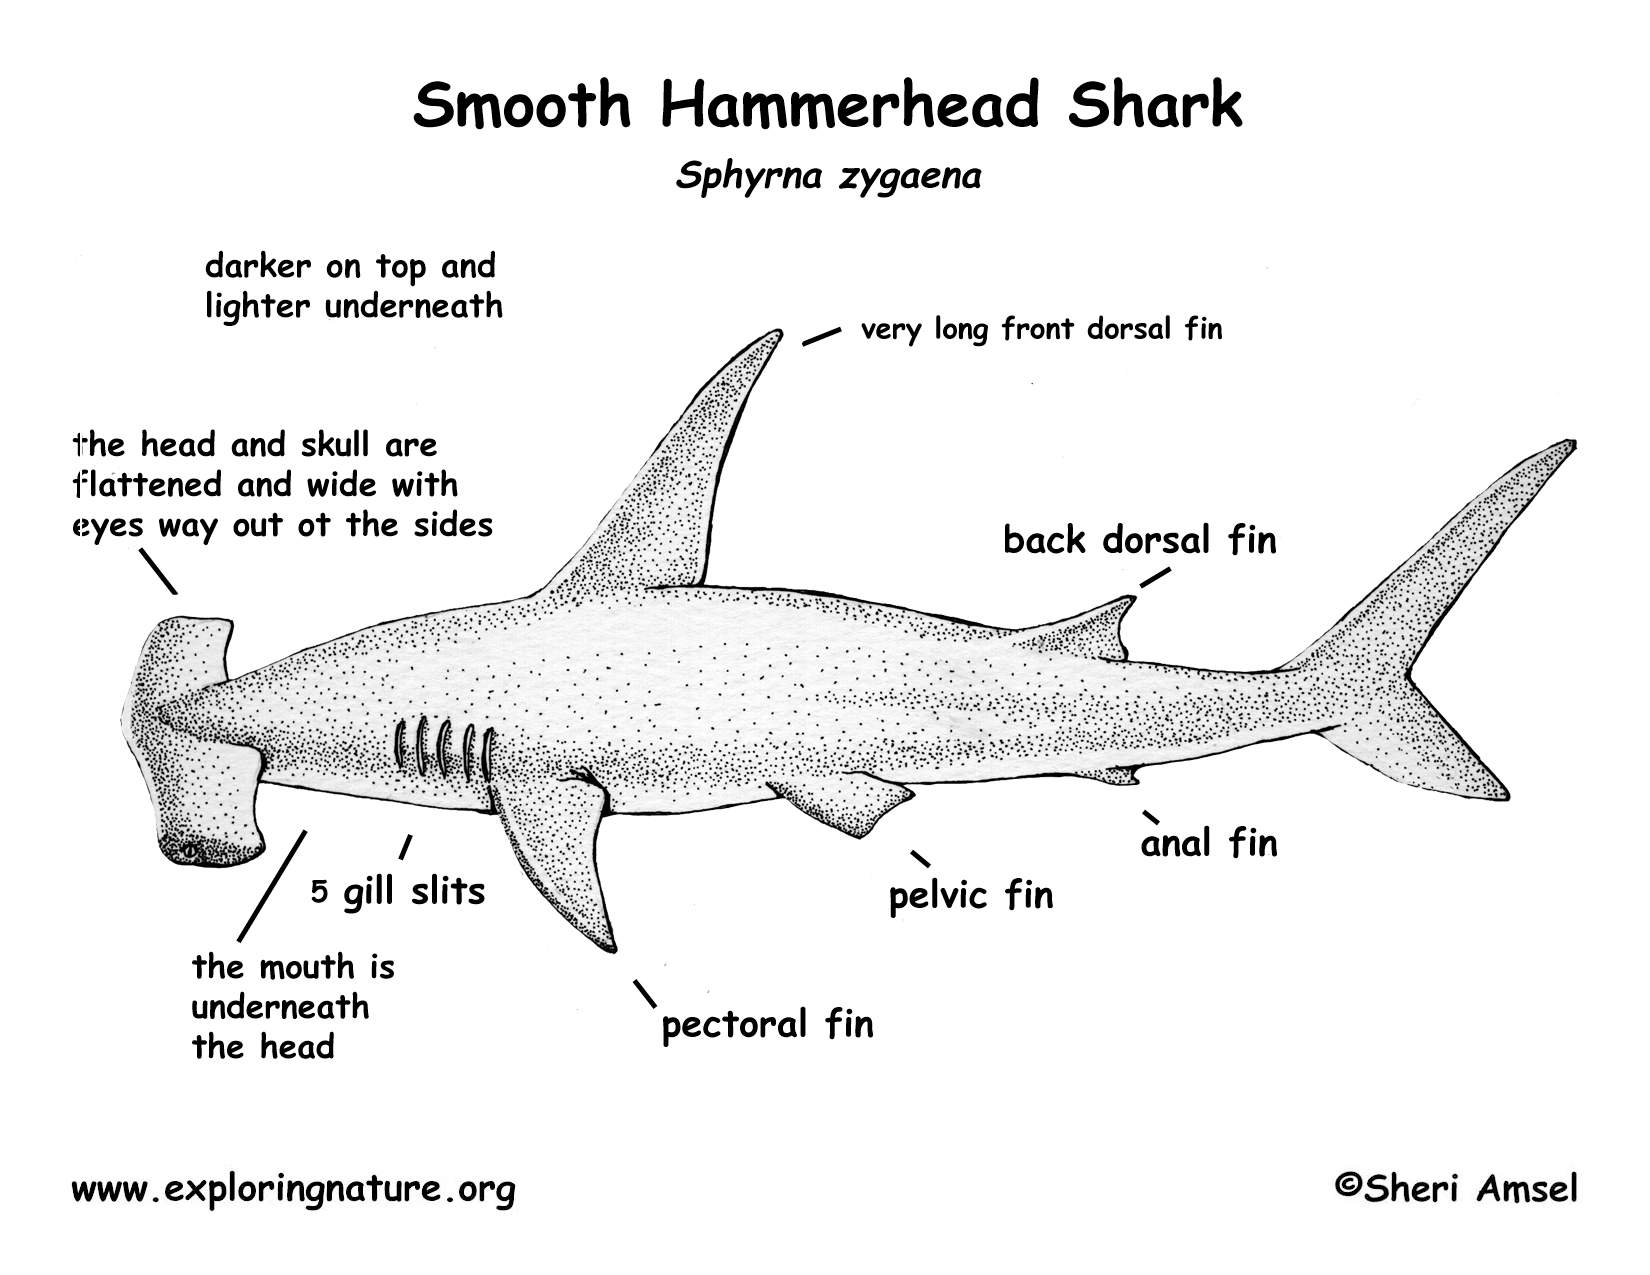 Shark Smooth Hammerhead